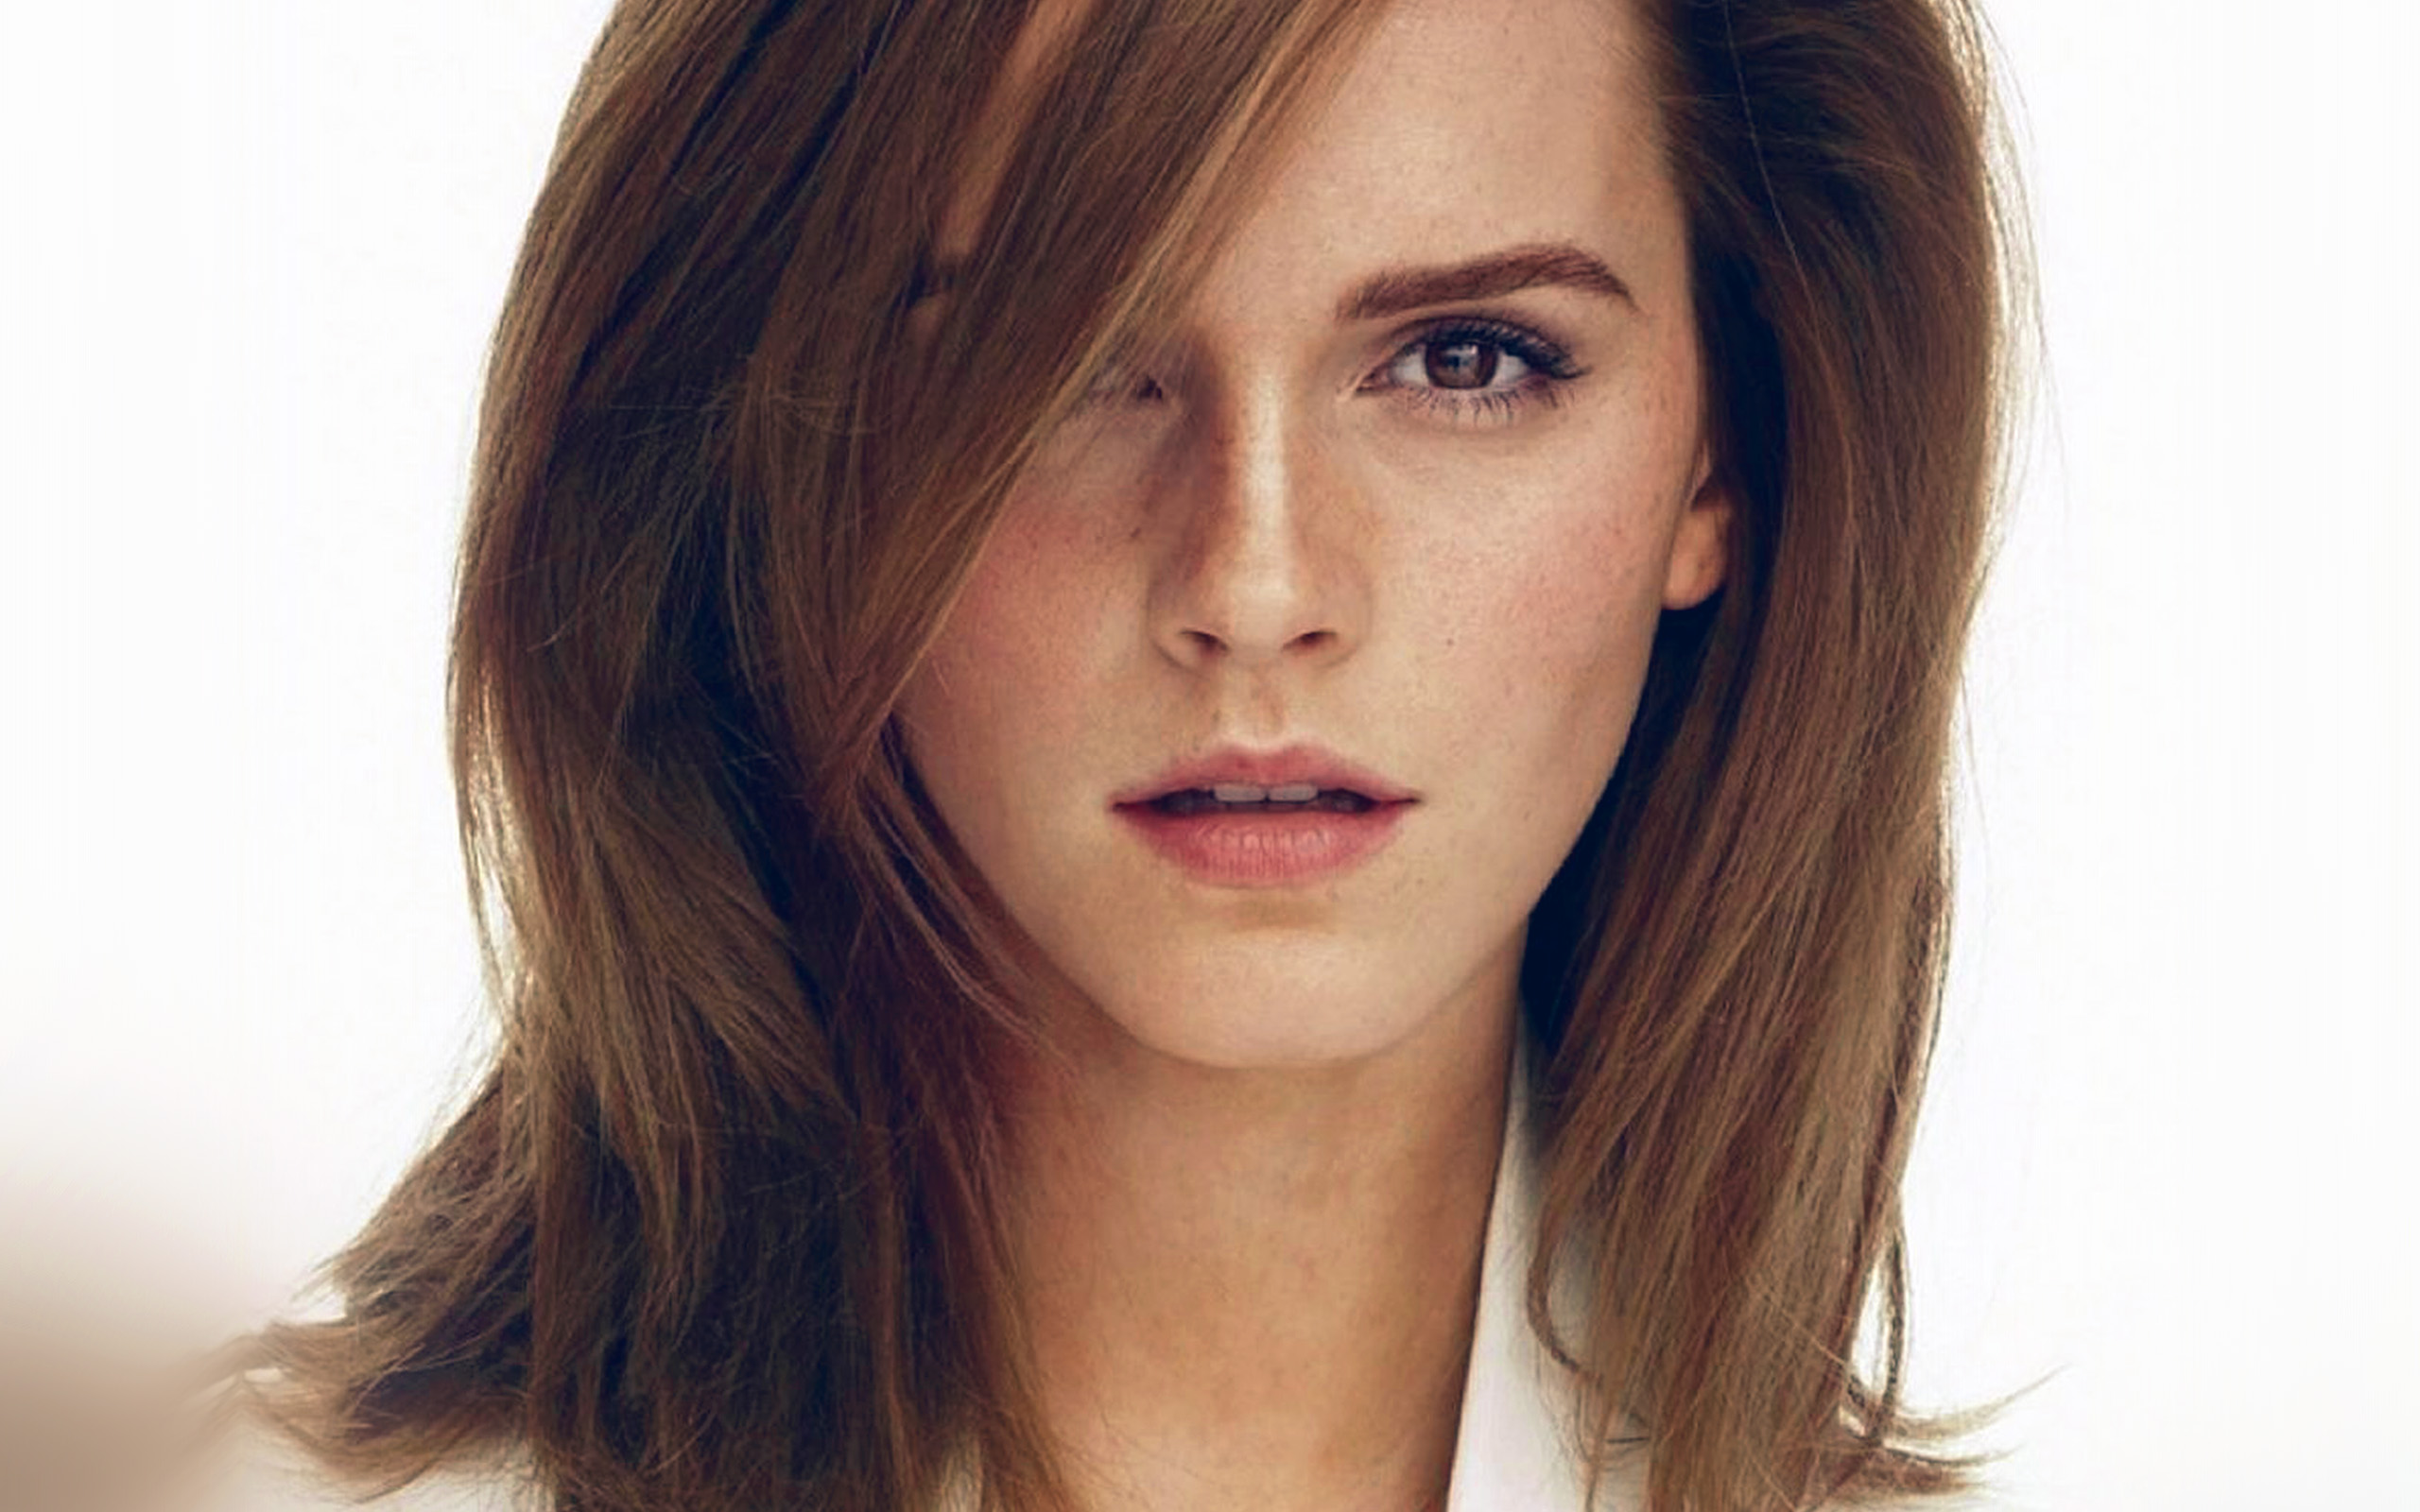 Car Girl Wallpaper Iphone Hp25 Girl Emma Watson Face Actress Film Wallpaper